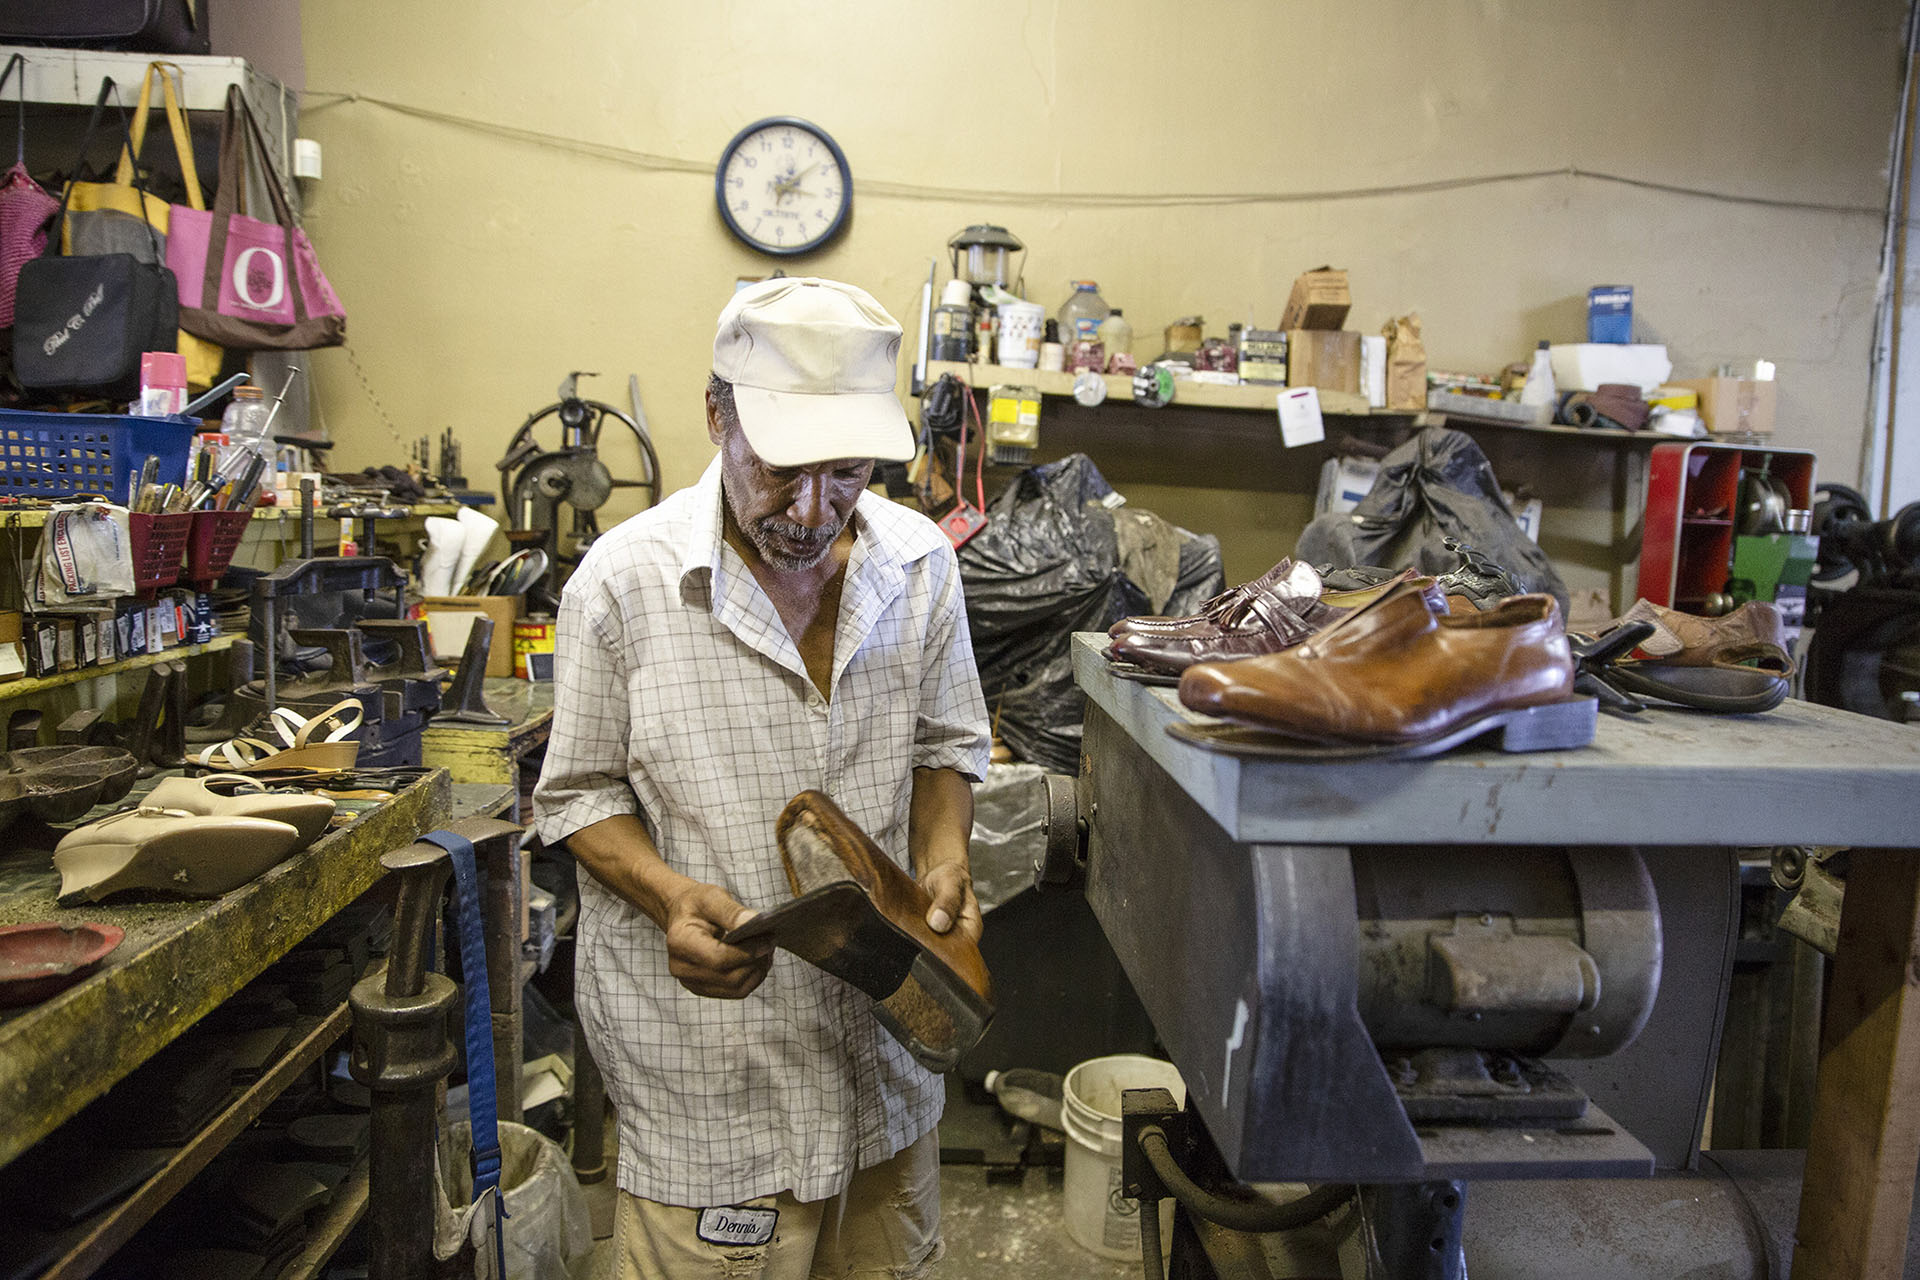 "Tony ""Dr. Shoemaker"" Brothers works on a customer's shoes at his family's business, Dennis Brothers Shoe Repair Service, in the 300 block of Farish Street in Jackson Wednesday, June 27, 2018. (Photo by Eric J. Shelton/GroundTruth)"